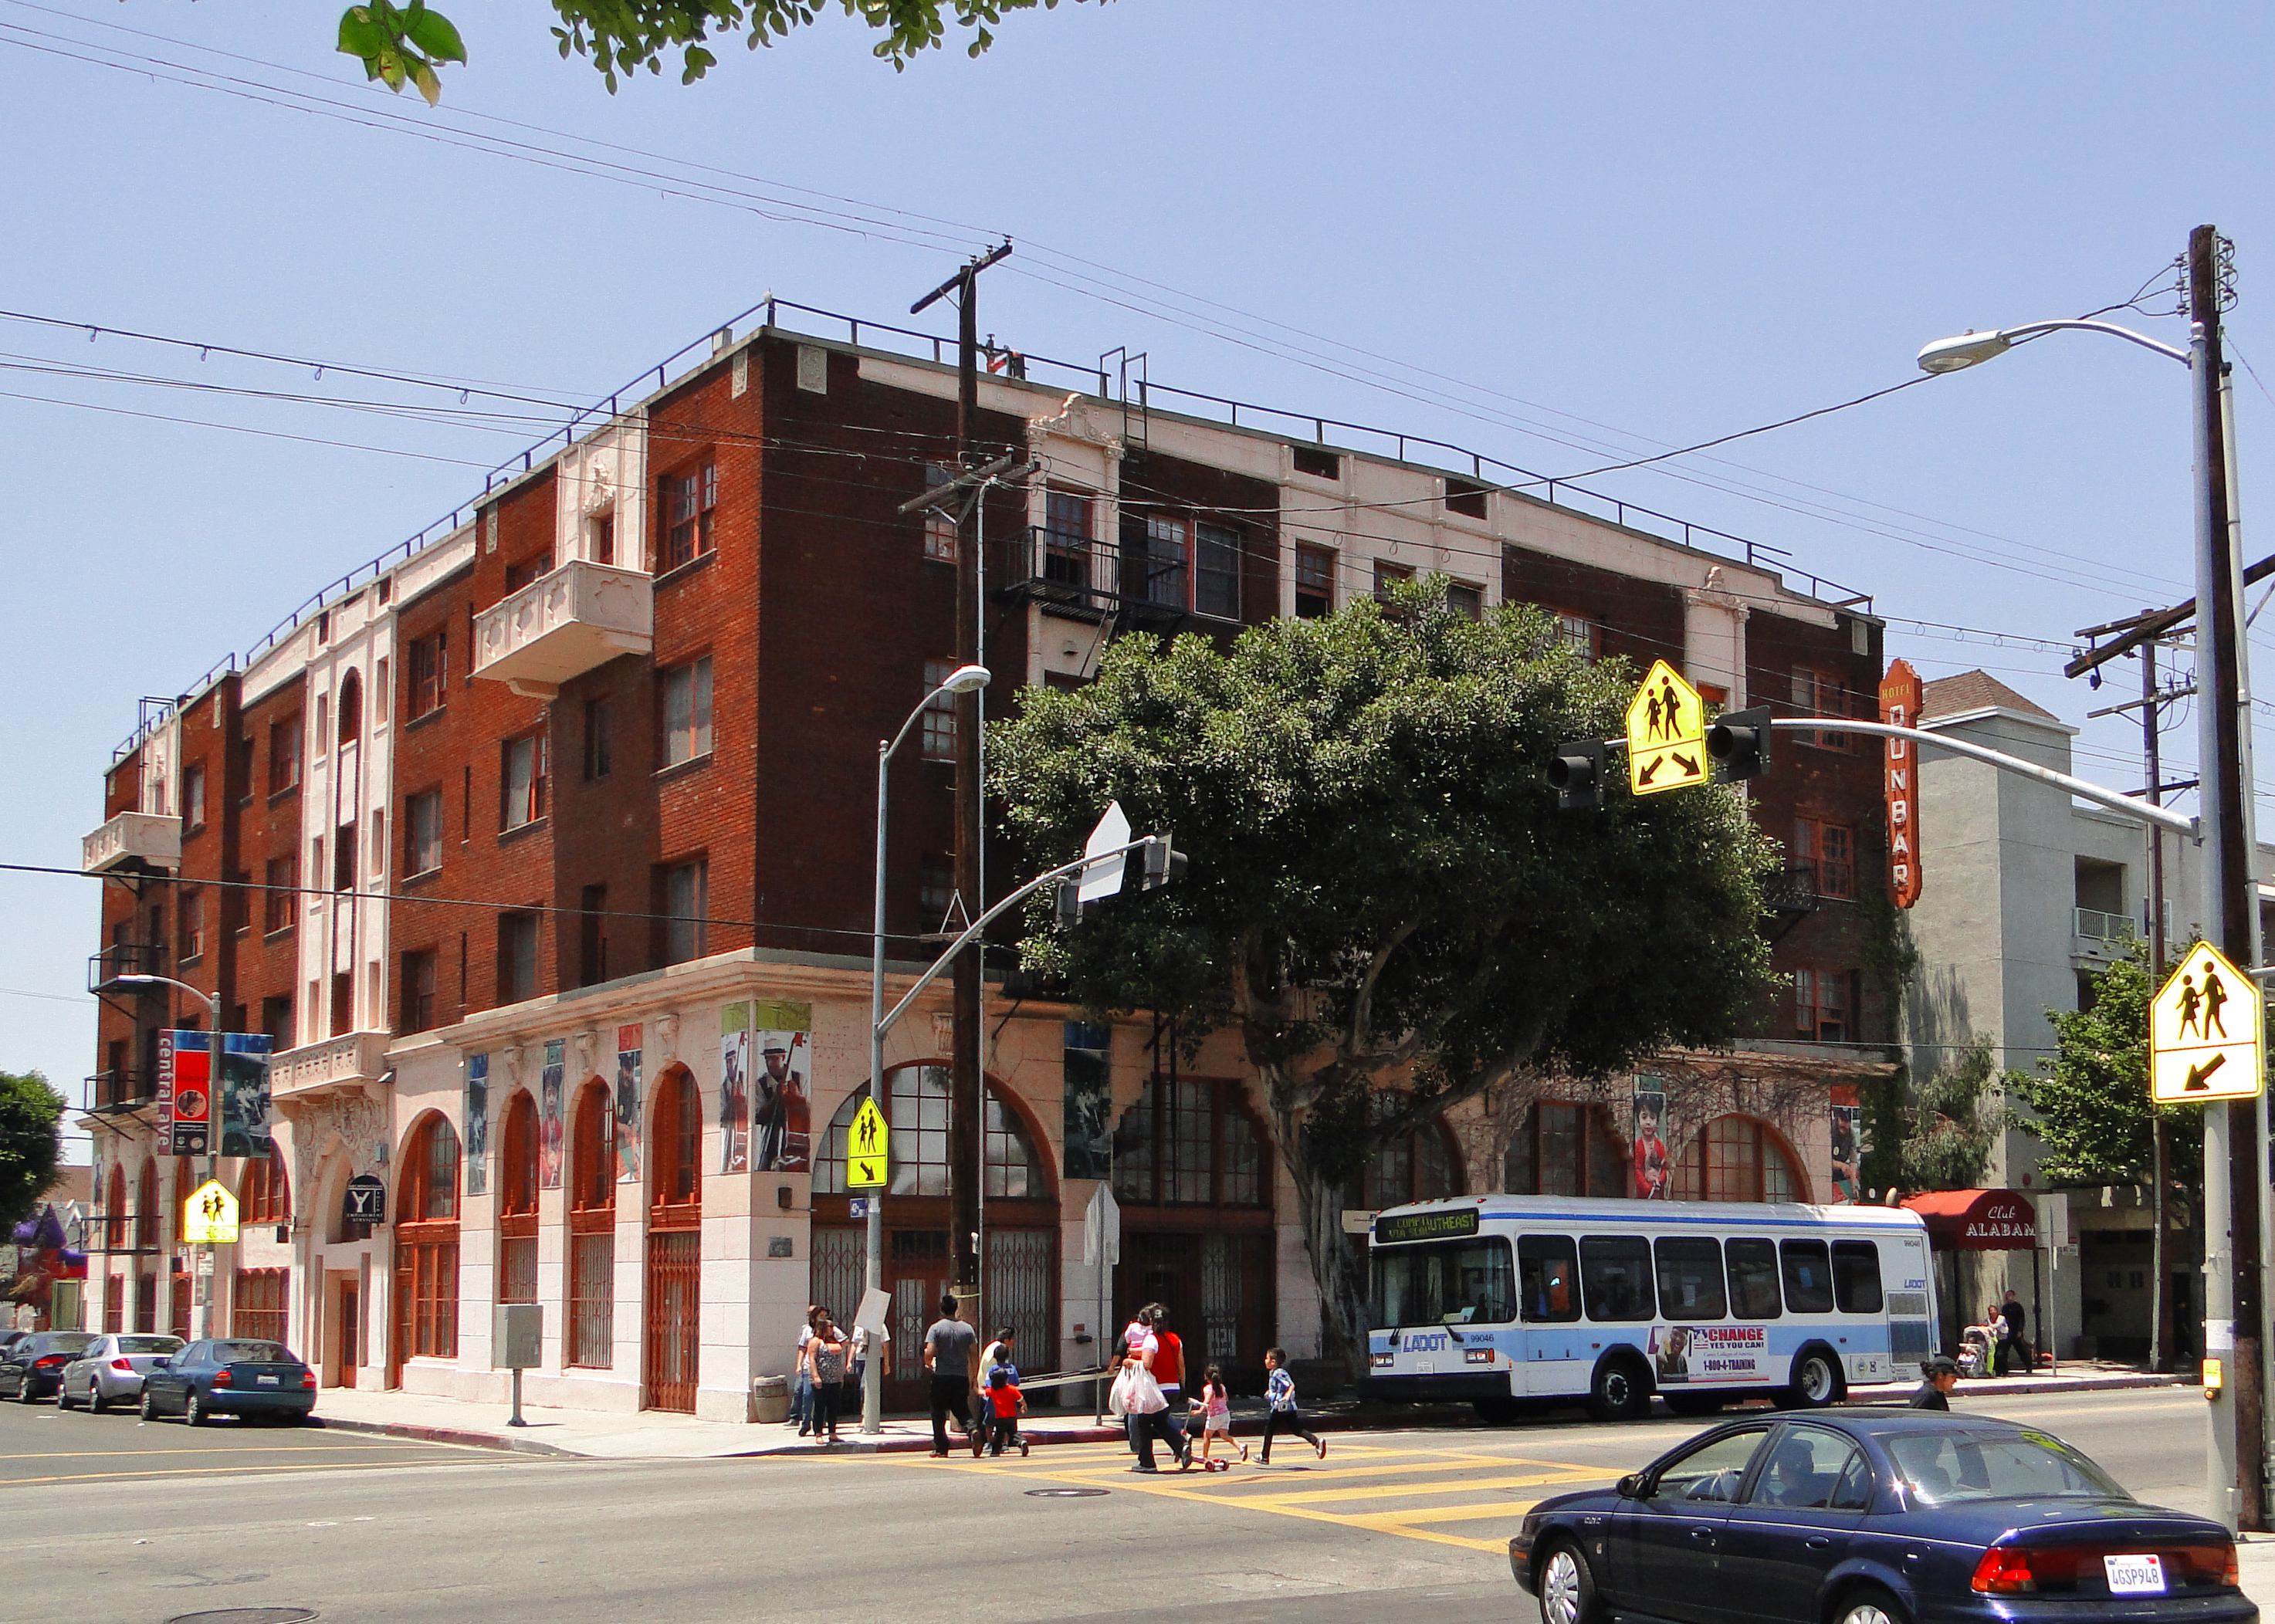 Dunbar Hotel, Los Angeles, United States from Wikipedia by user Cbl62